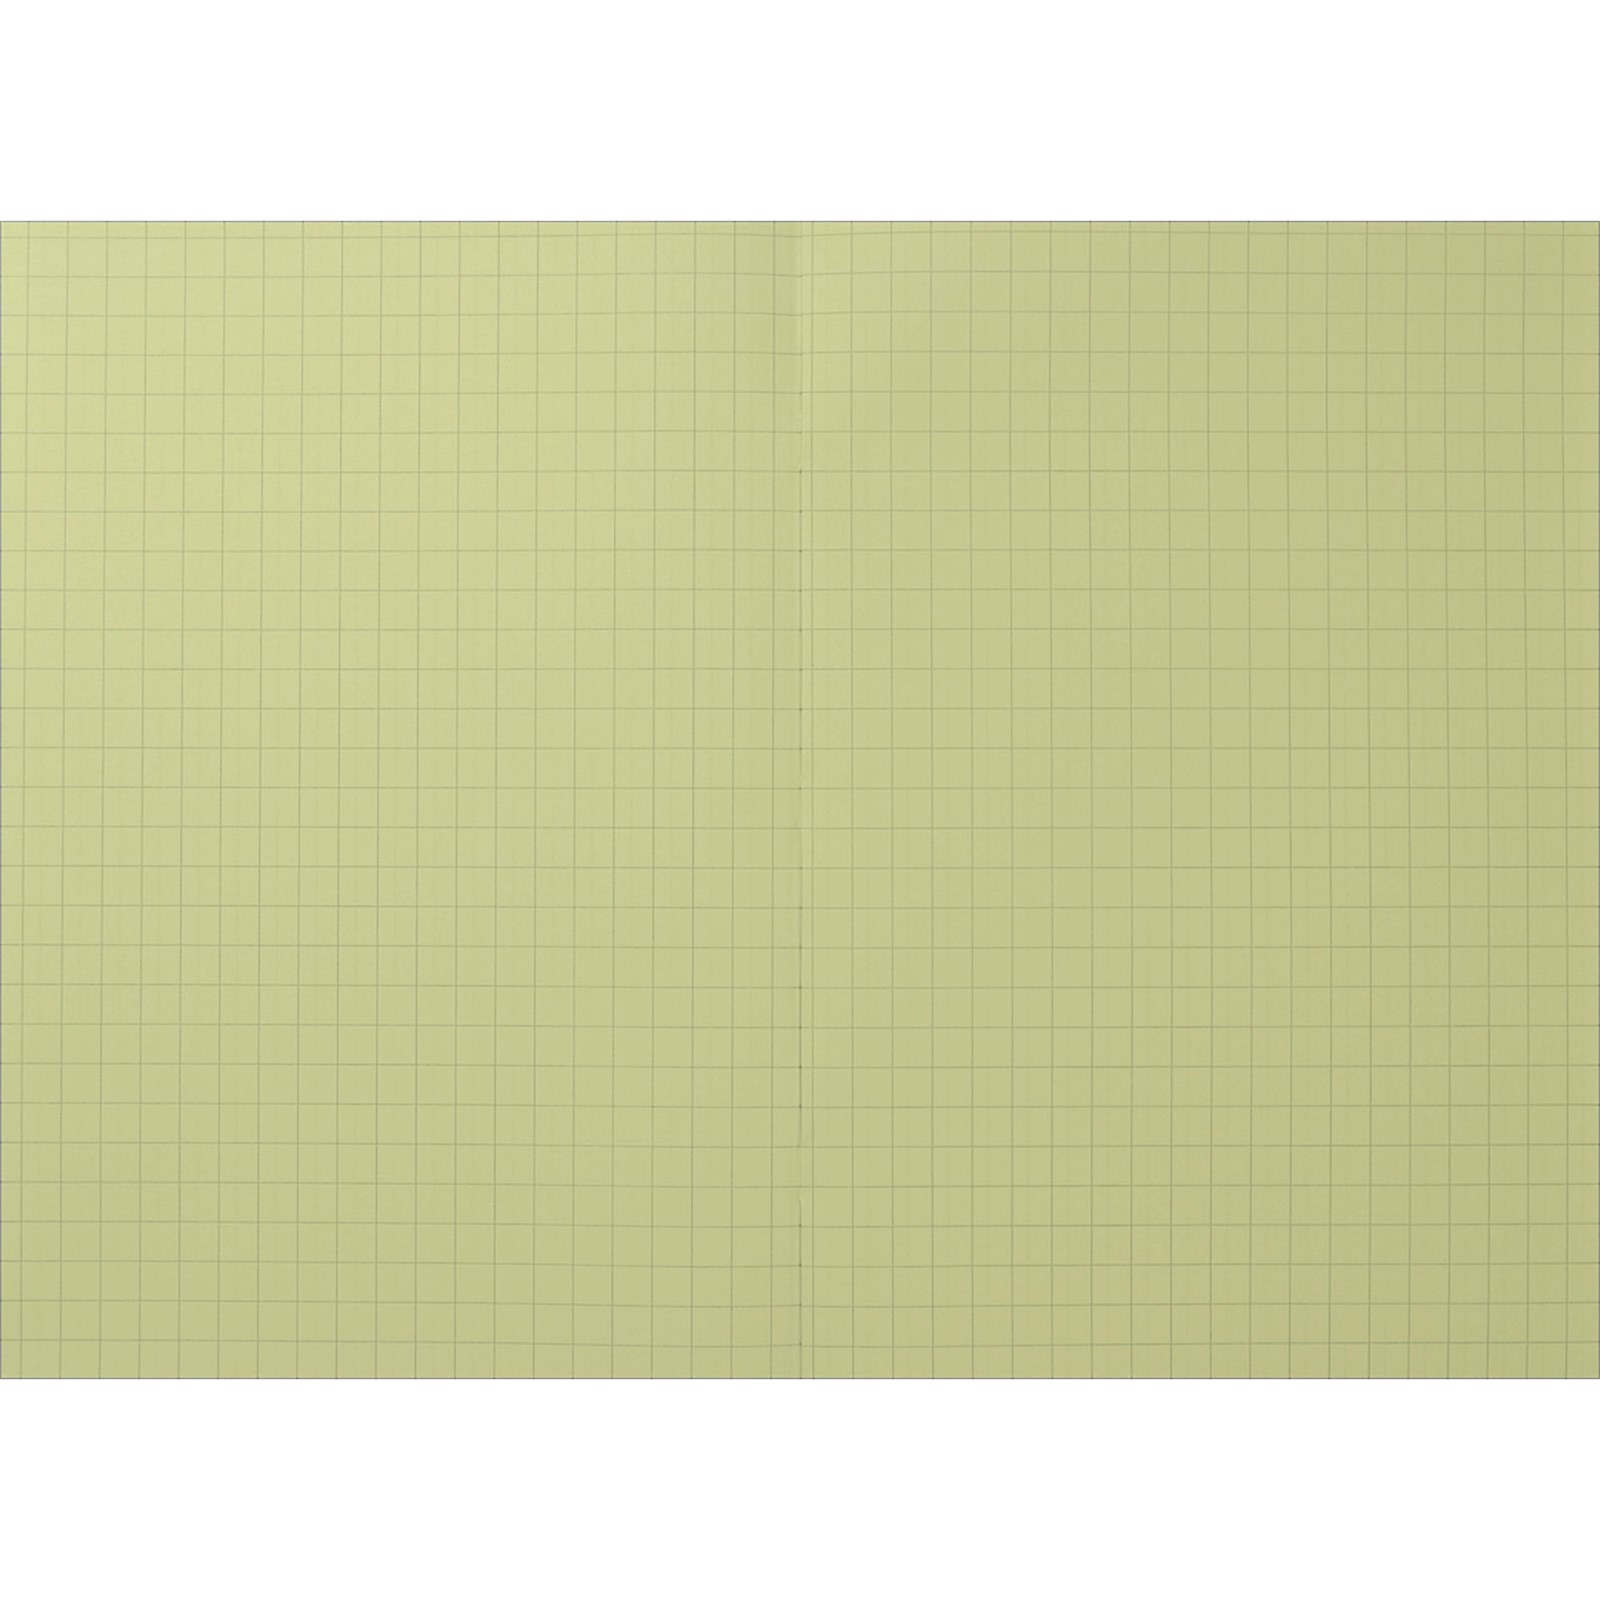 Yellow A4 Rhino Exercise Book 48-Page, 10mm Squared - Pack of 10